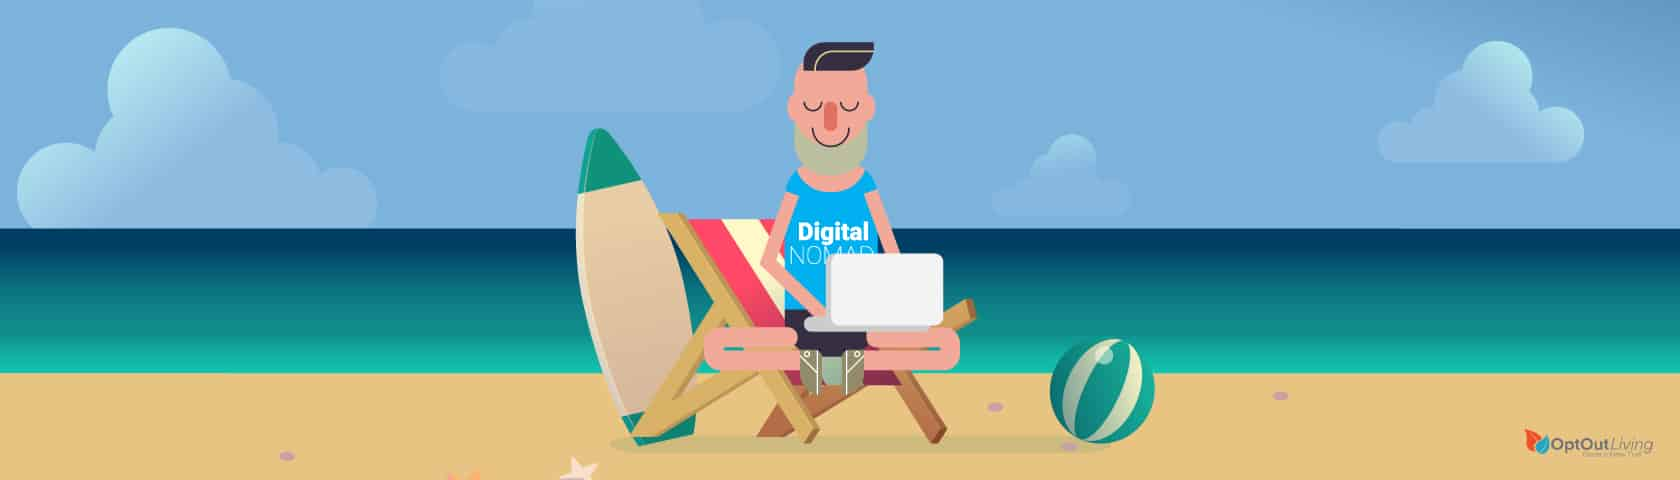 Living as a digital nomad graphic